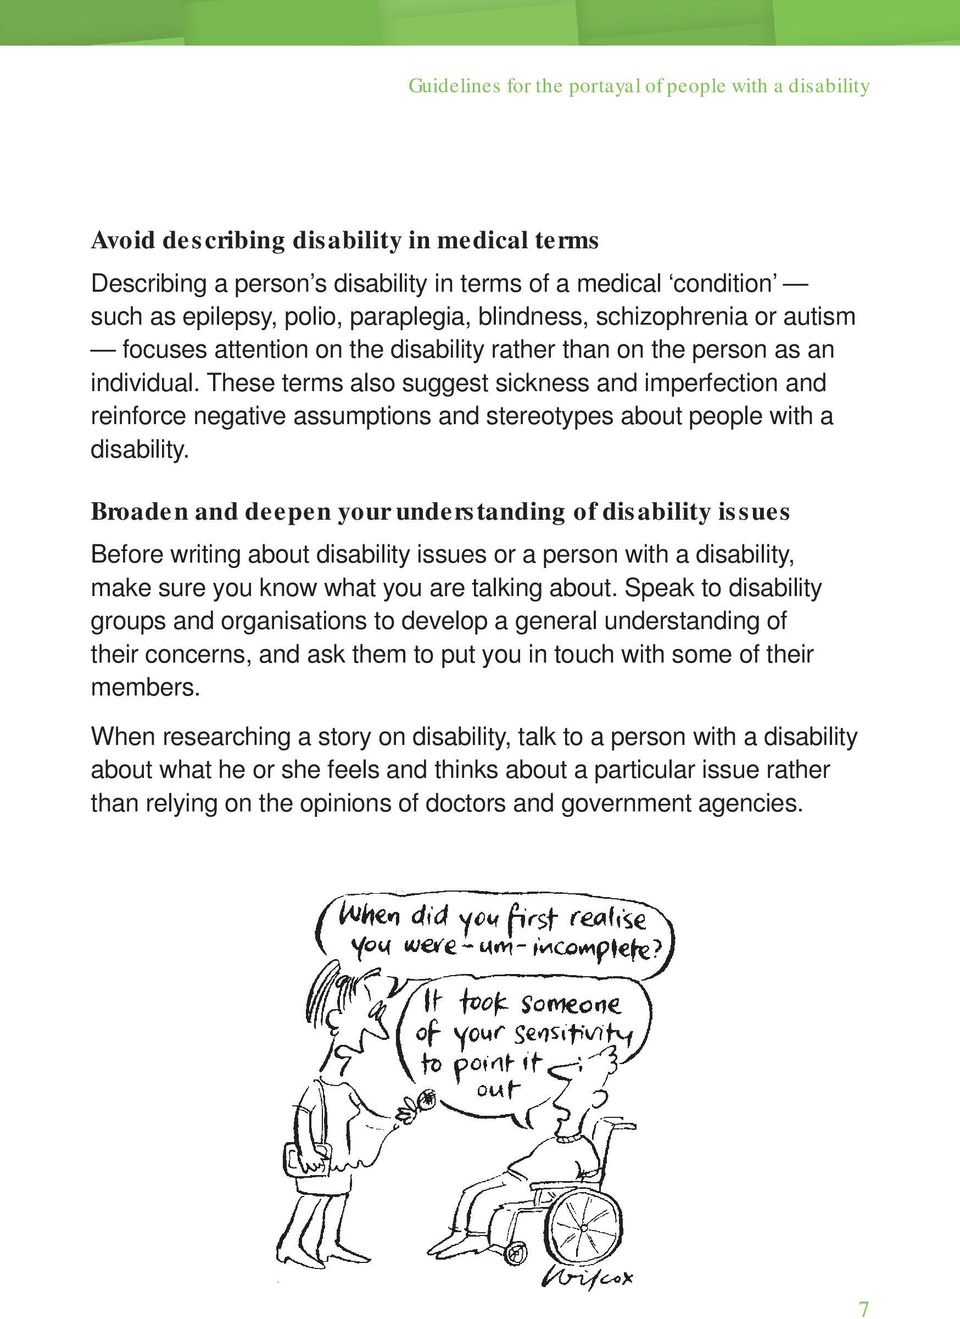 These terms also suggest sickness and imperfection and reinforce negative assumptions and stereotypes about people with a disability.